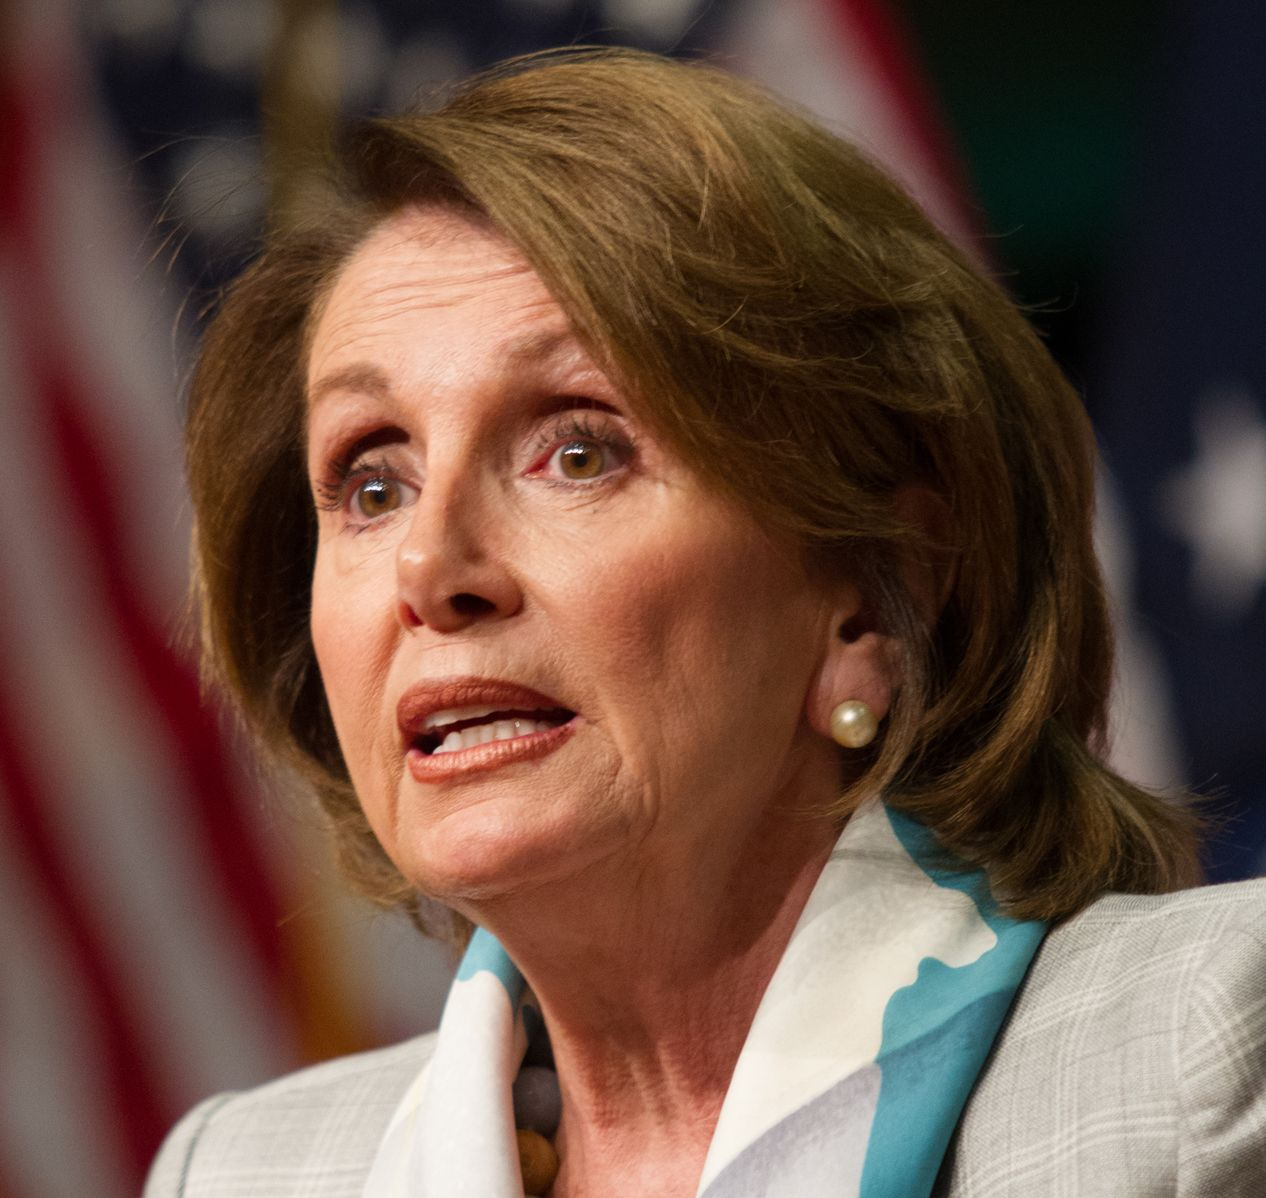 How Nancy Pelosi Earned Her Fortune May Surprise You – Average Citizen Would Be Targeted For The Same Thing